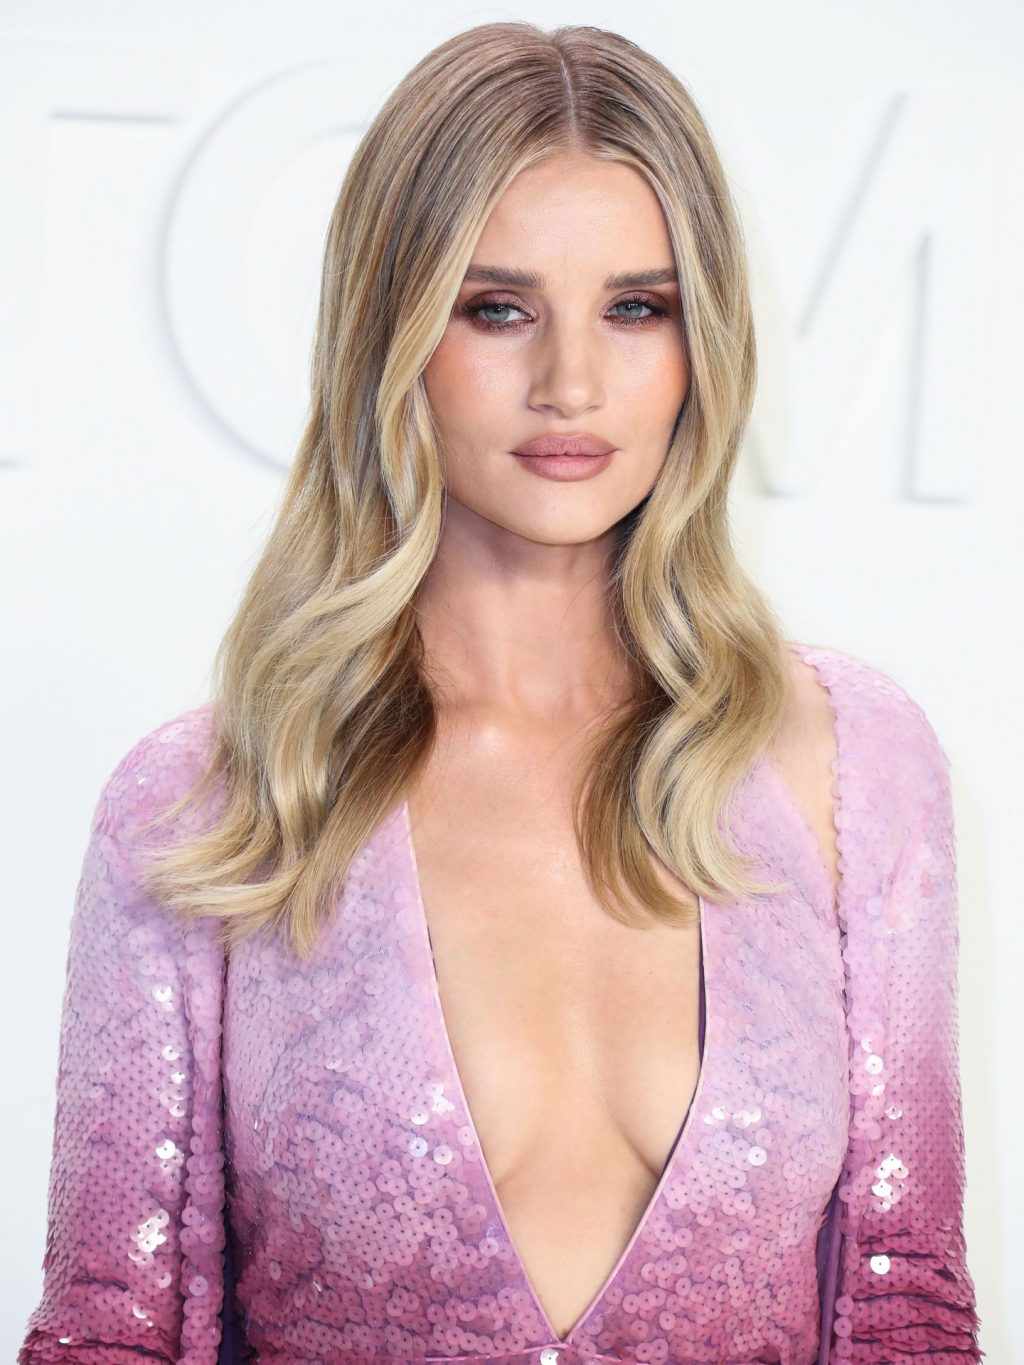 Rosie Huntington Whiteley Sexy The Fappening Blog 102 1024x1365 - Rosie Huntington-Whiteley Shows Her Cleavage at the Tom Ford Fashion Show (115 Photos)